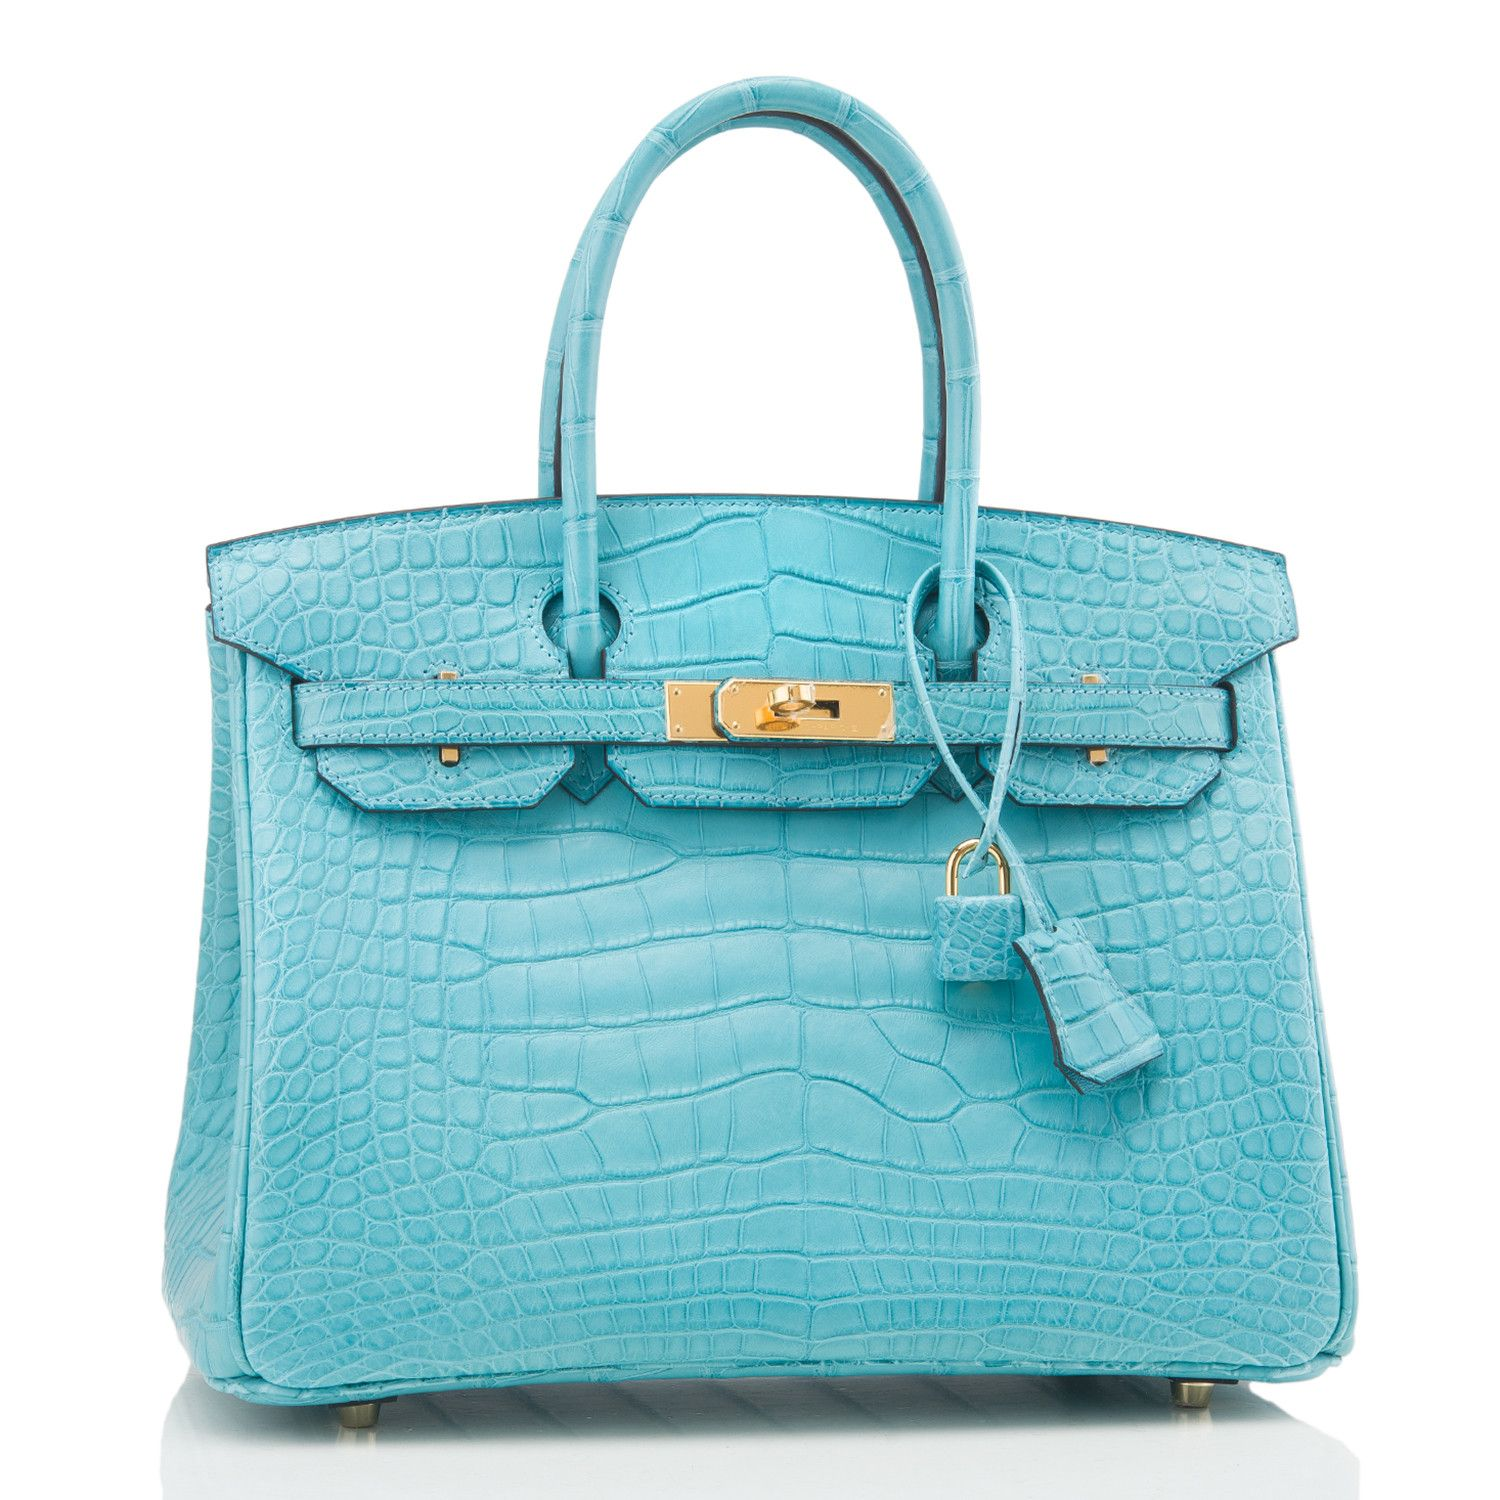 8e26a4941756 ... clearance hermes blue saint cyr matte alligator birkin with gold  hardware in store fresh condition.